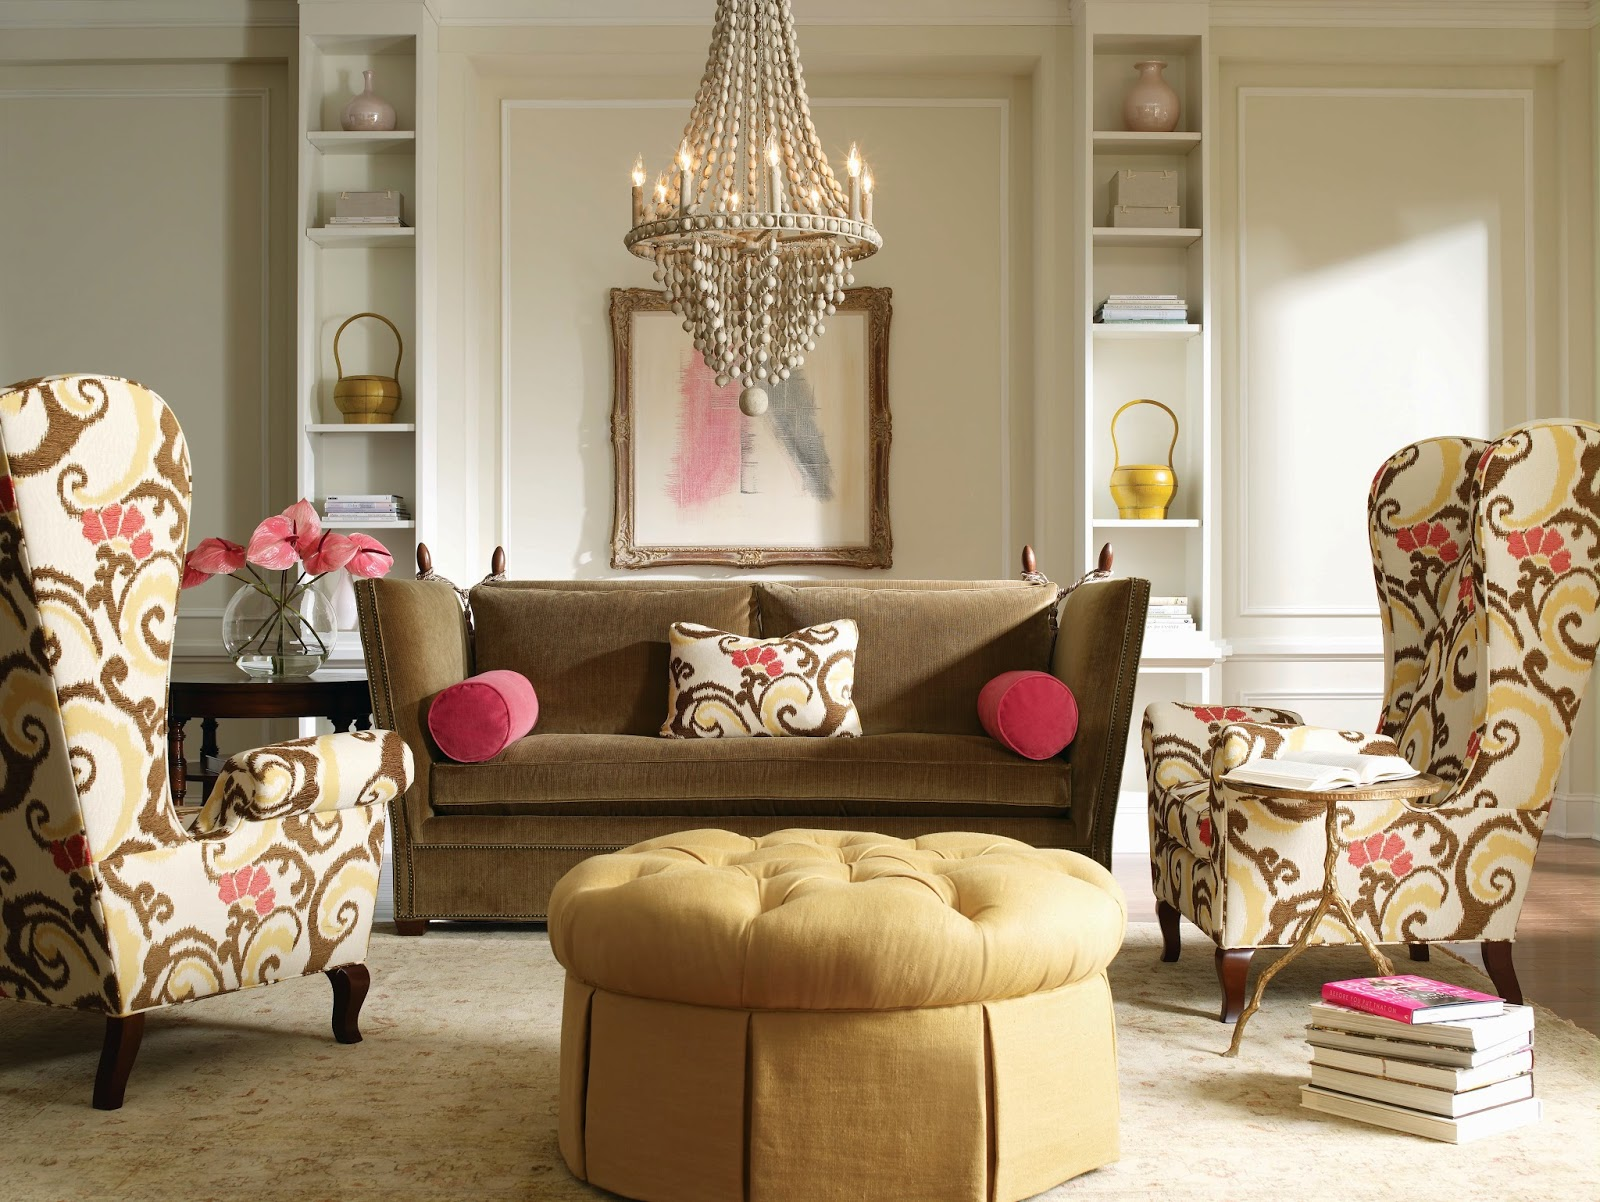 Classic Style Furniture fro Practical Chic Interiors. Neoclassicism in the roomy premise